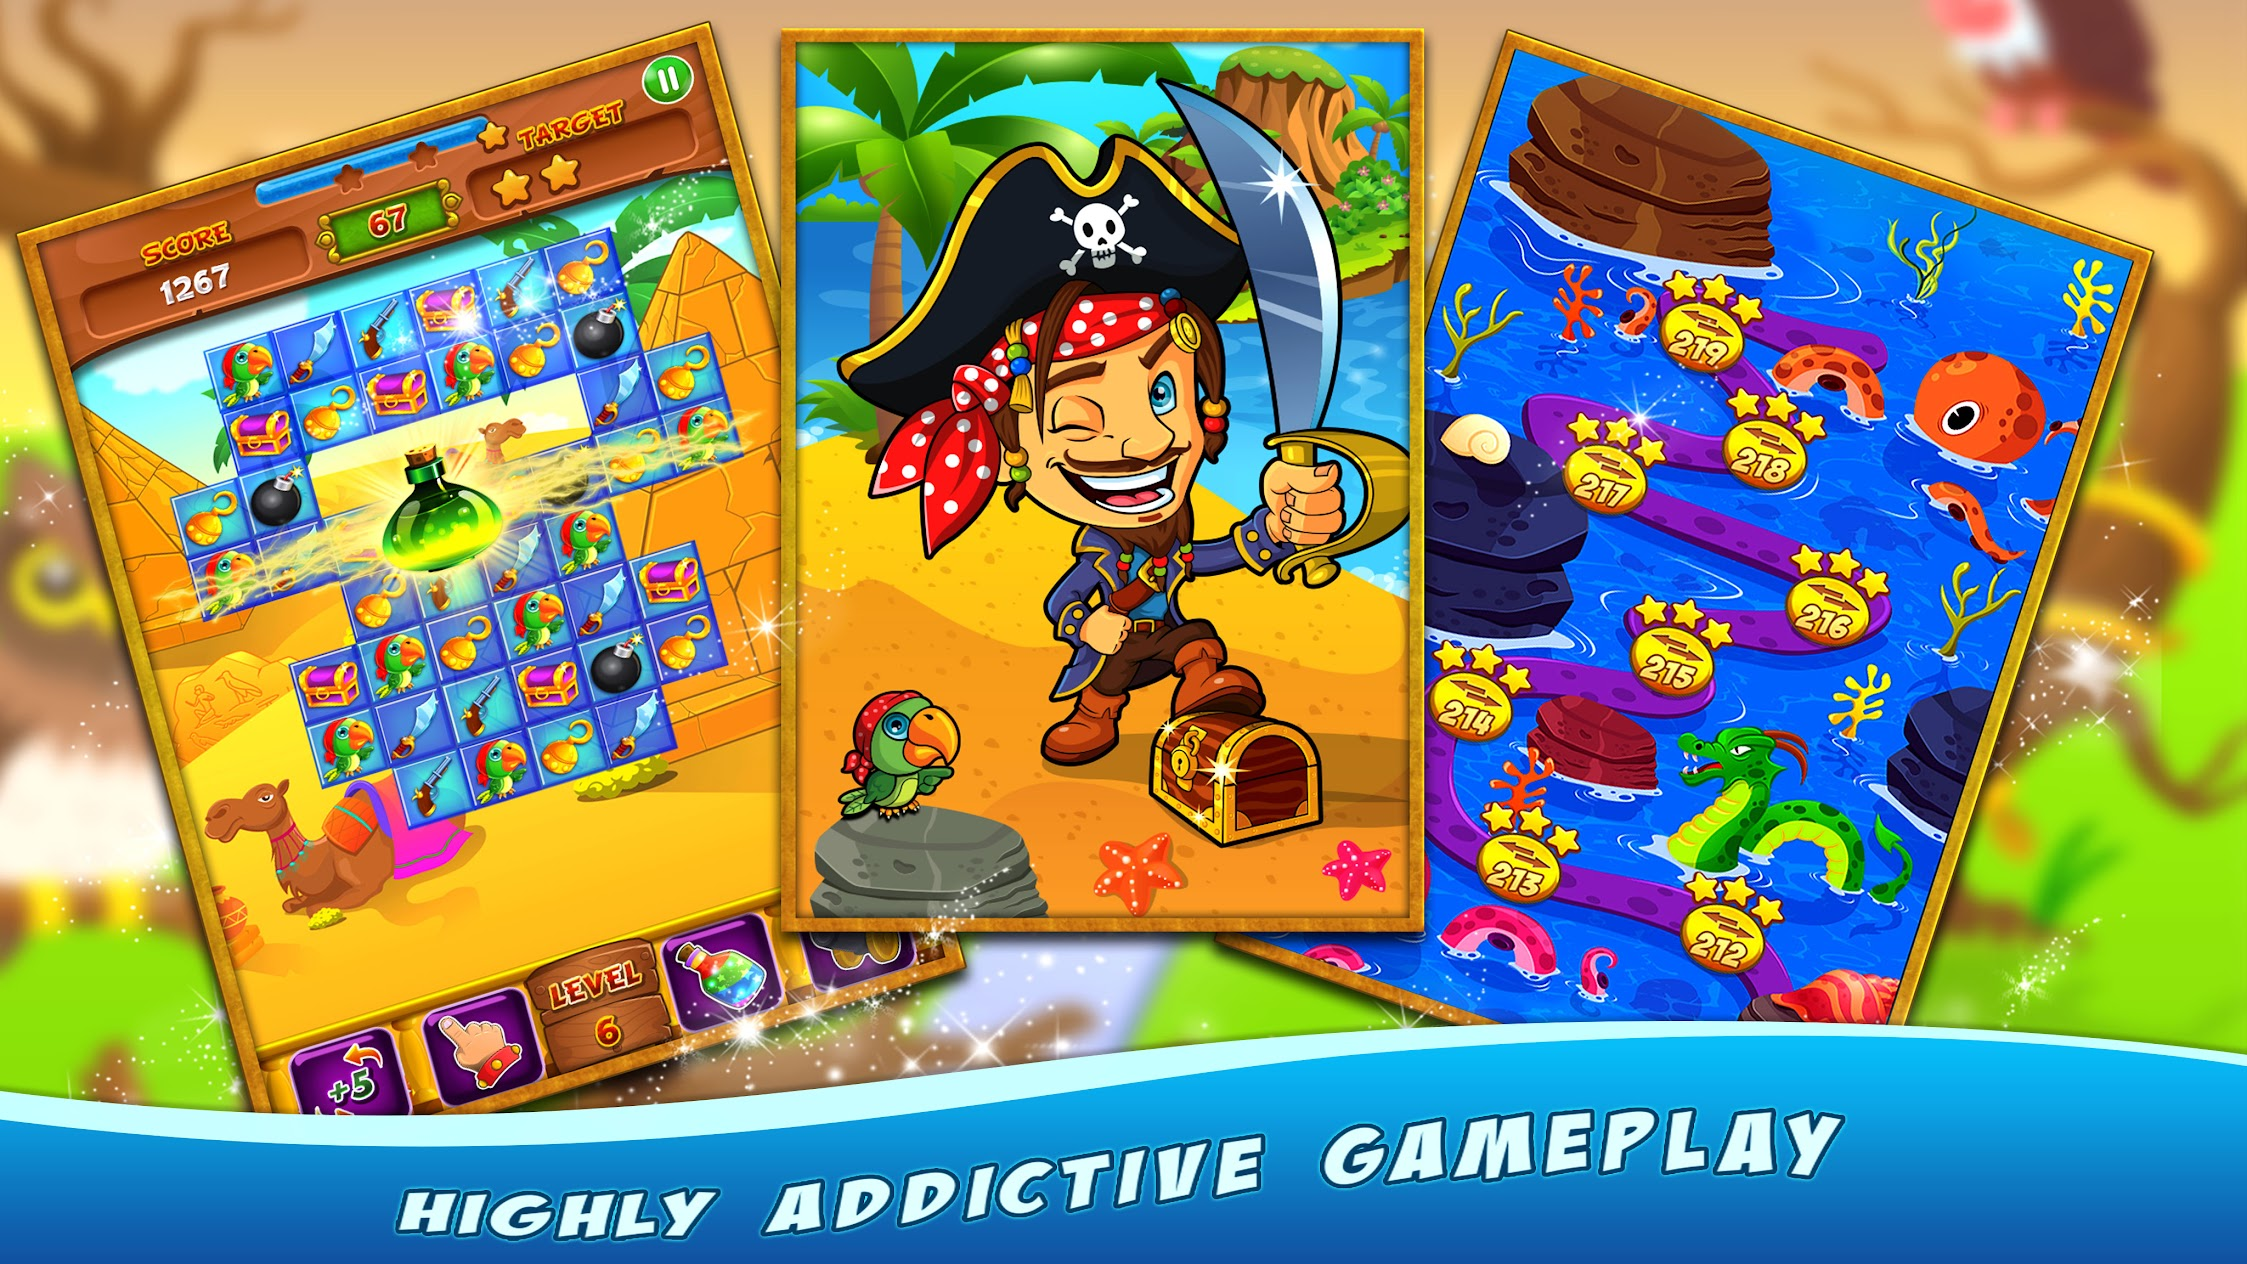 Dominic Games : We Create Games for Kids